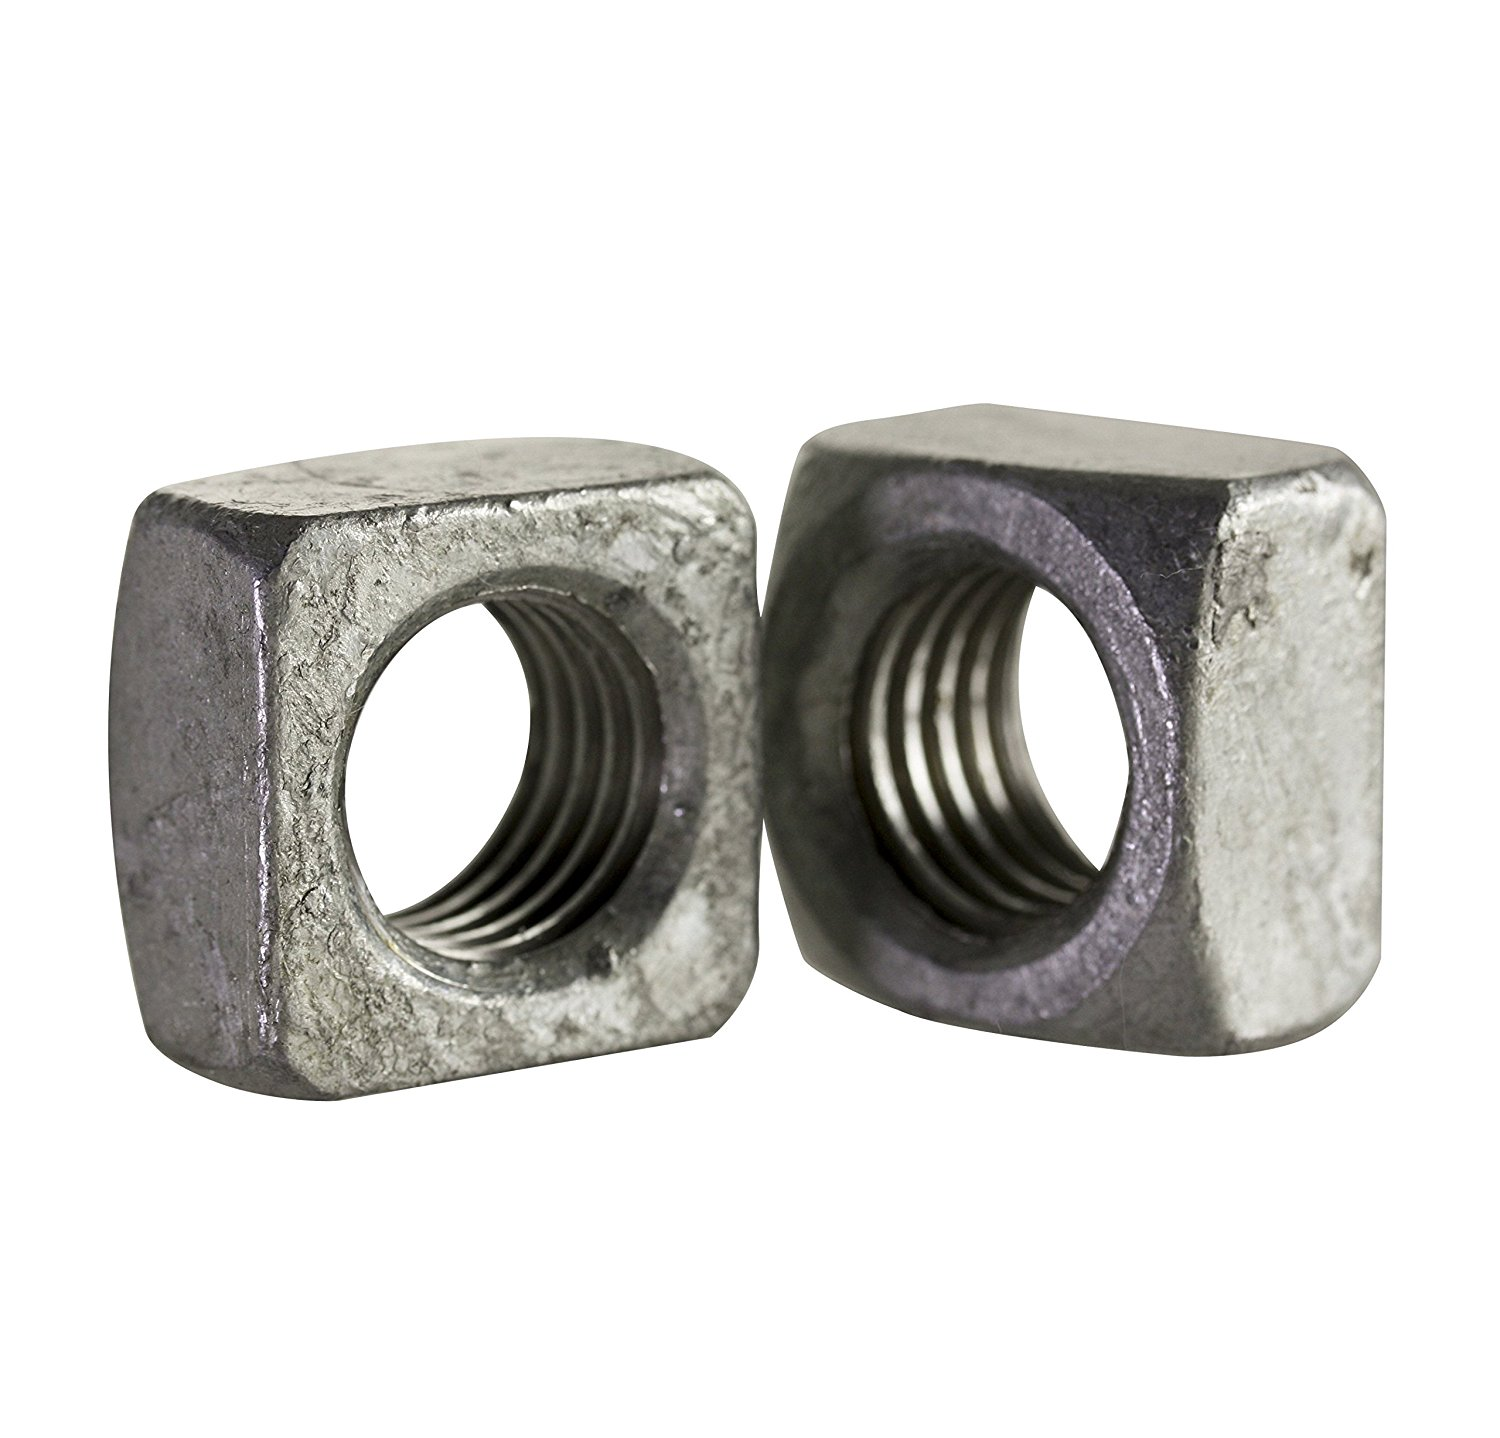 """Steel Square Nut, Hot-Dipped Galvanized Finish, Grade 2, Meets ASME B18.2.2, 7/8""""-9 Thread Size, 1-5/16"""" Width Across Flats, 49/64"""" Thick (Pack of 175)"""